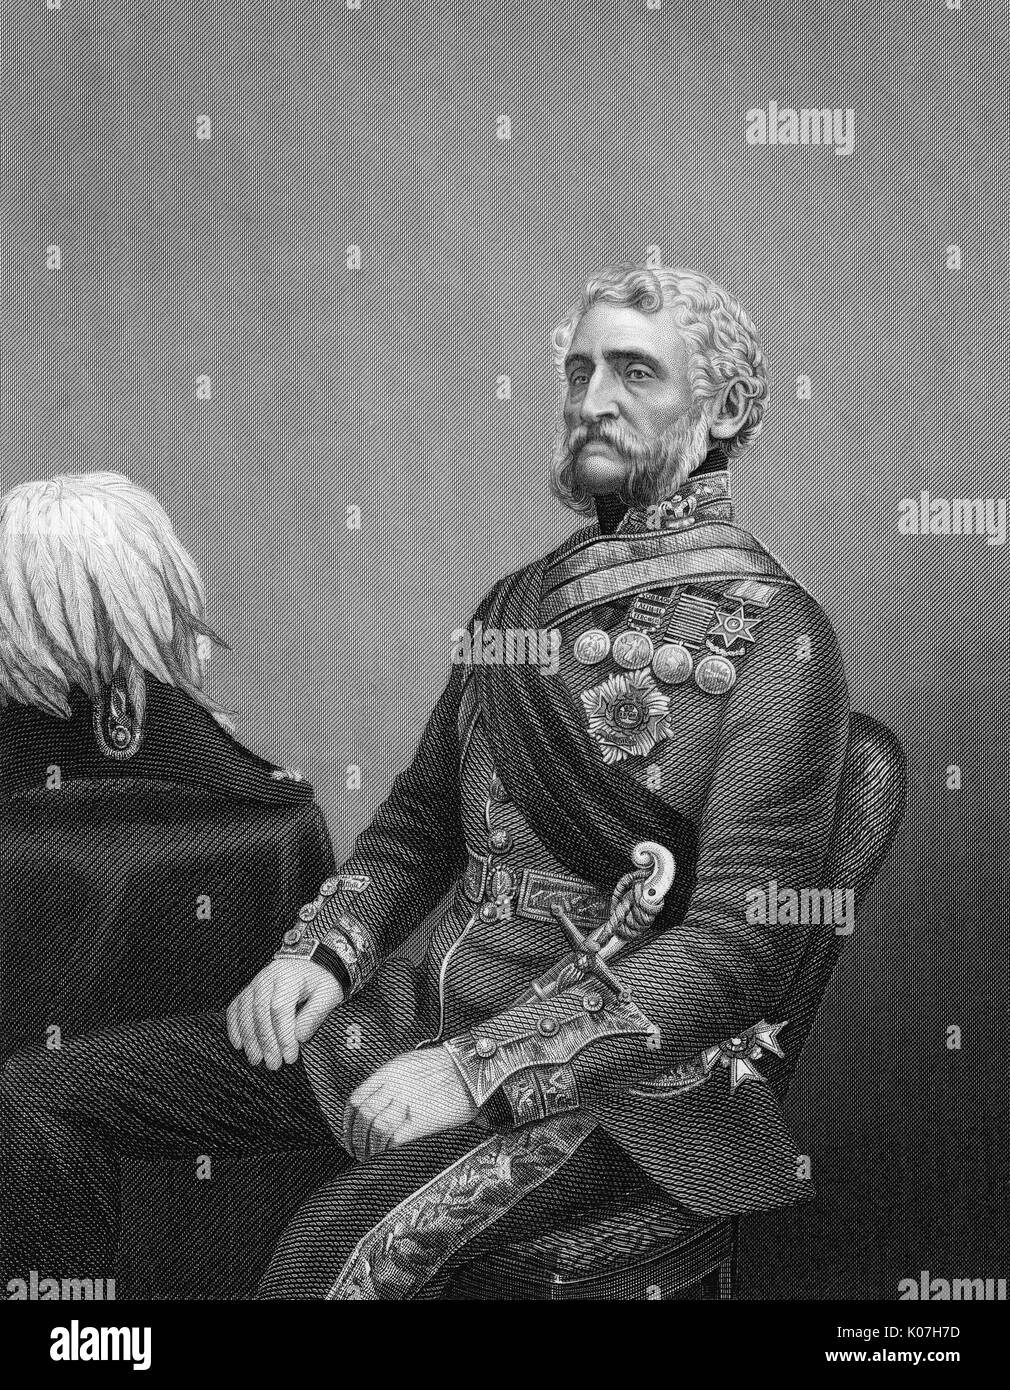 Sir Harry Smith (1787 - 1860) - soldier and administrator whose arrogant  and insensitive policies,  coupled with his incompetence, led to catastrophe for the Xhosa (Kaffirs) in South Africa     Date: - Stock Image